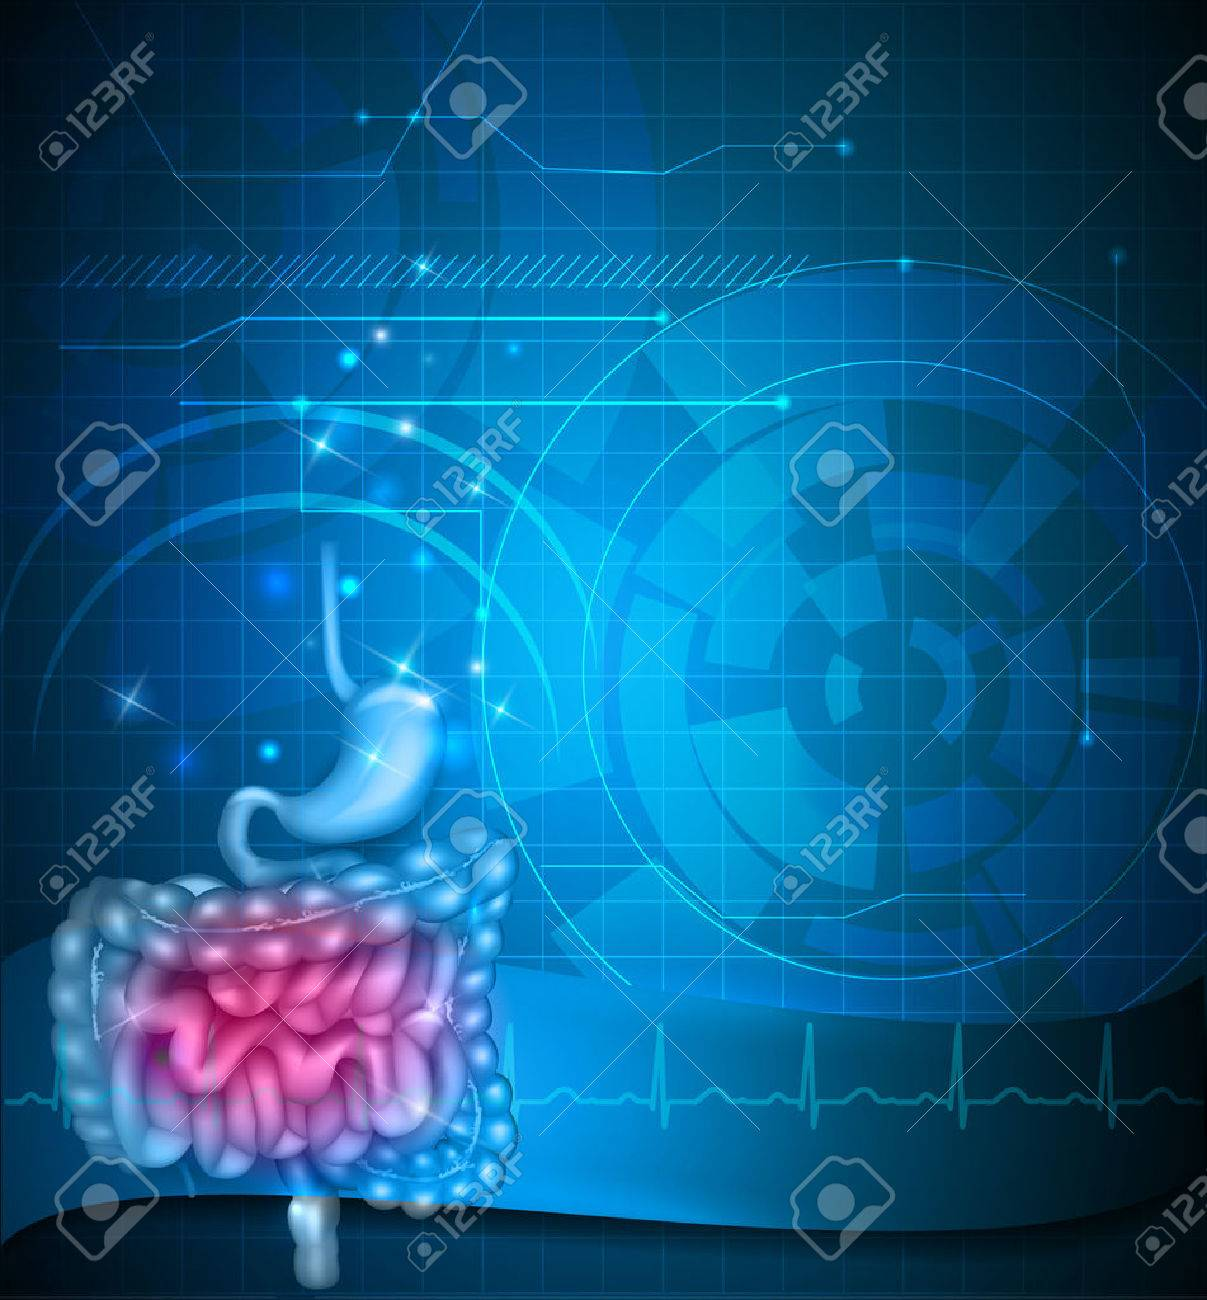 Gastrointestinal tract blue background. Stomach, small intestine and colon. Beautiful bright illustration. Stock Vector - 56849658